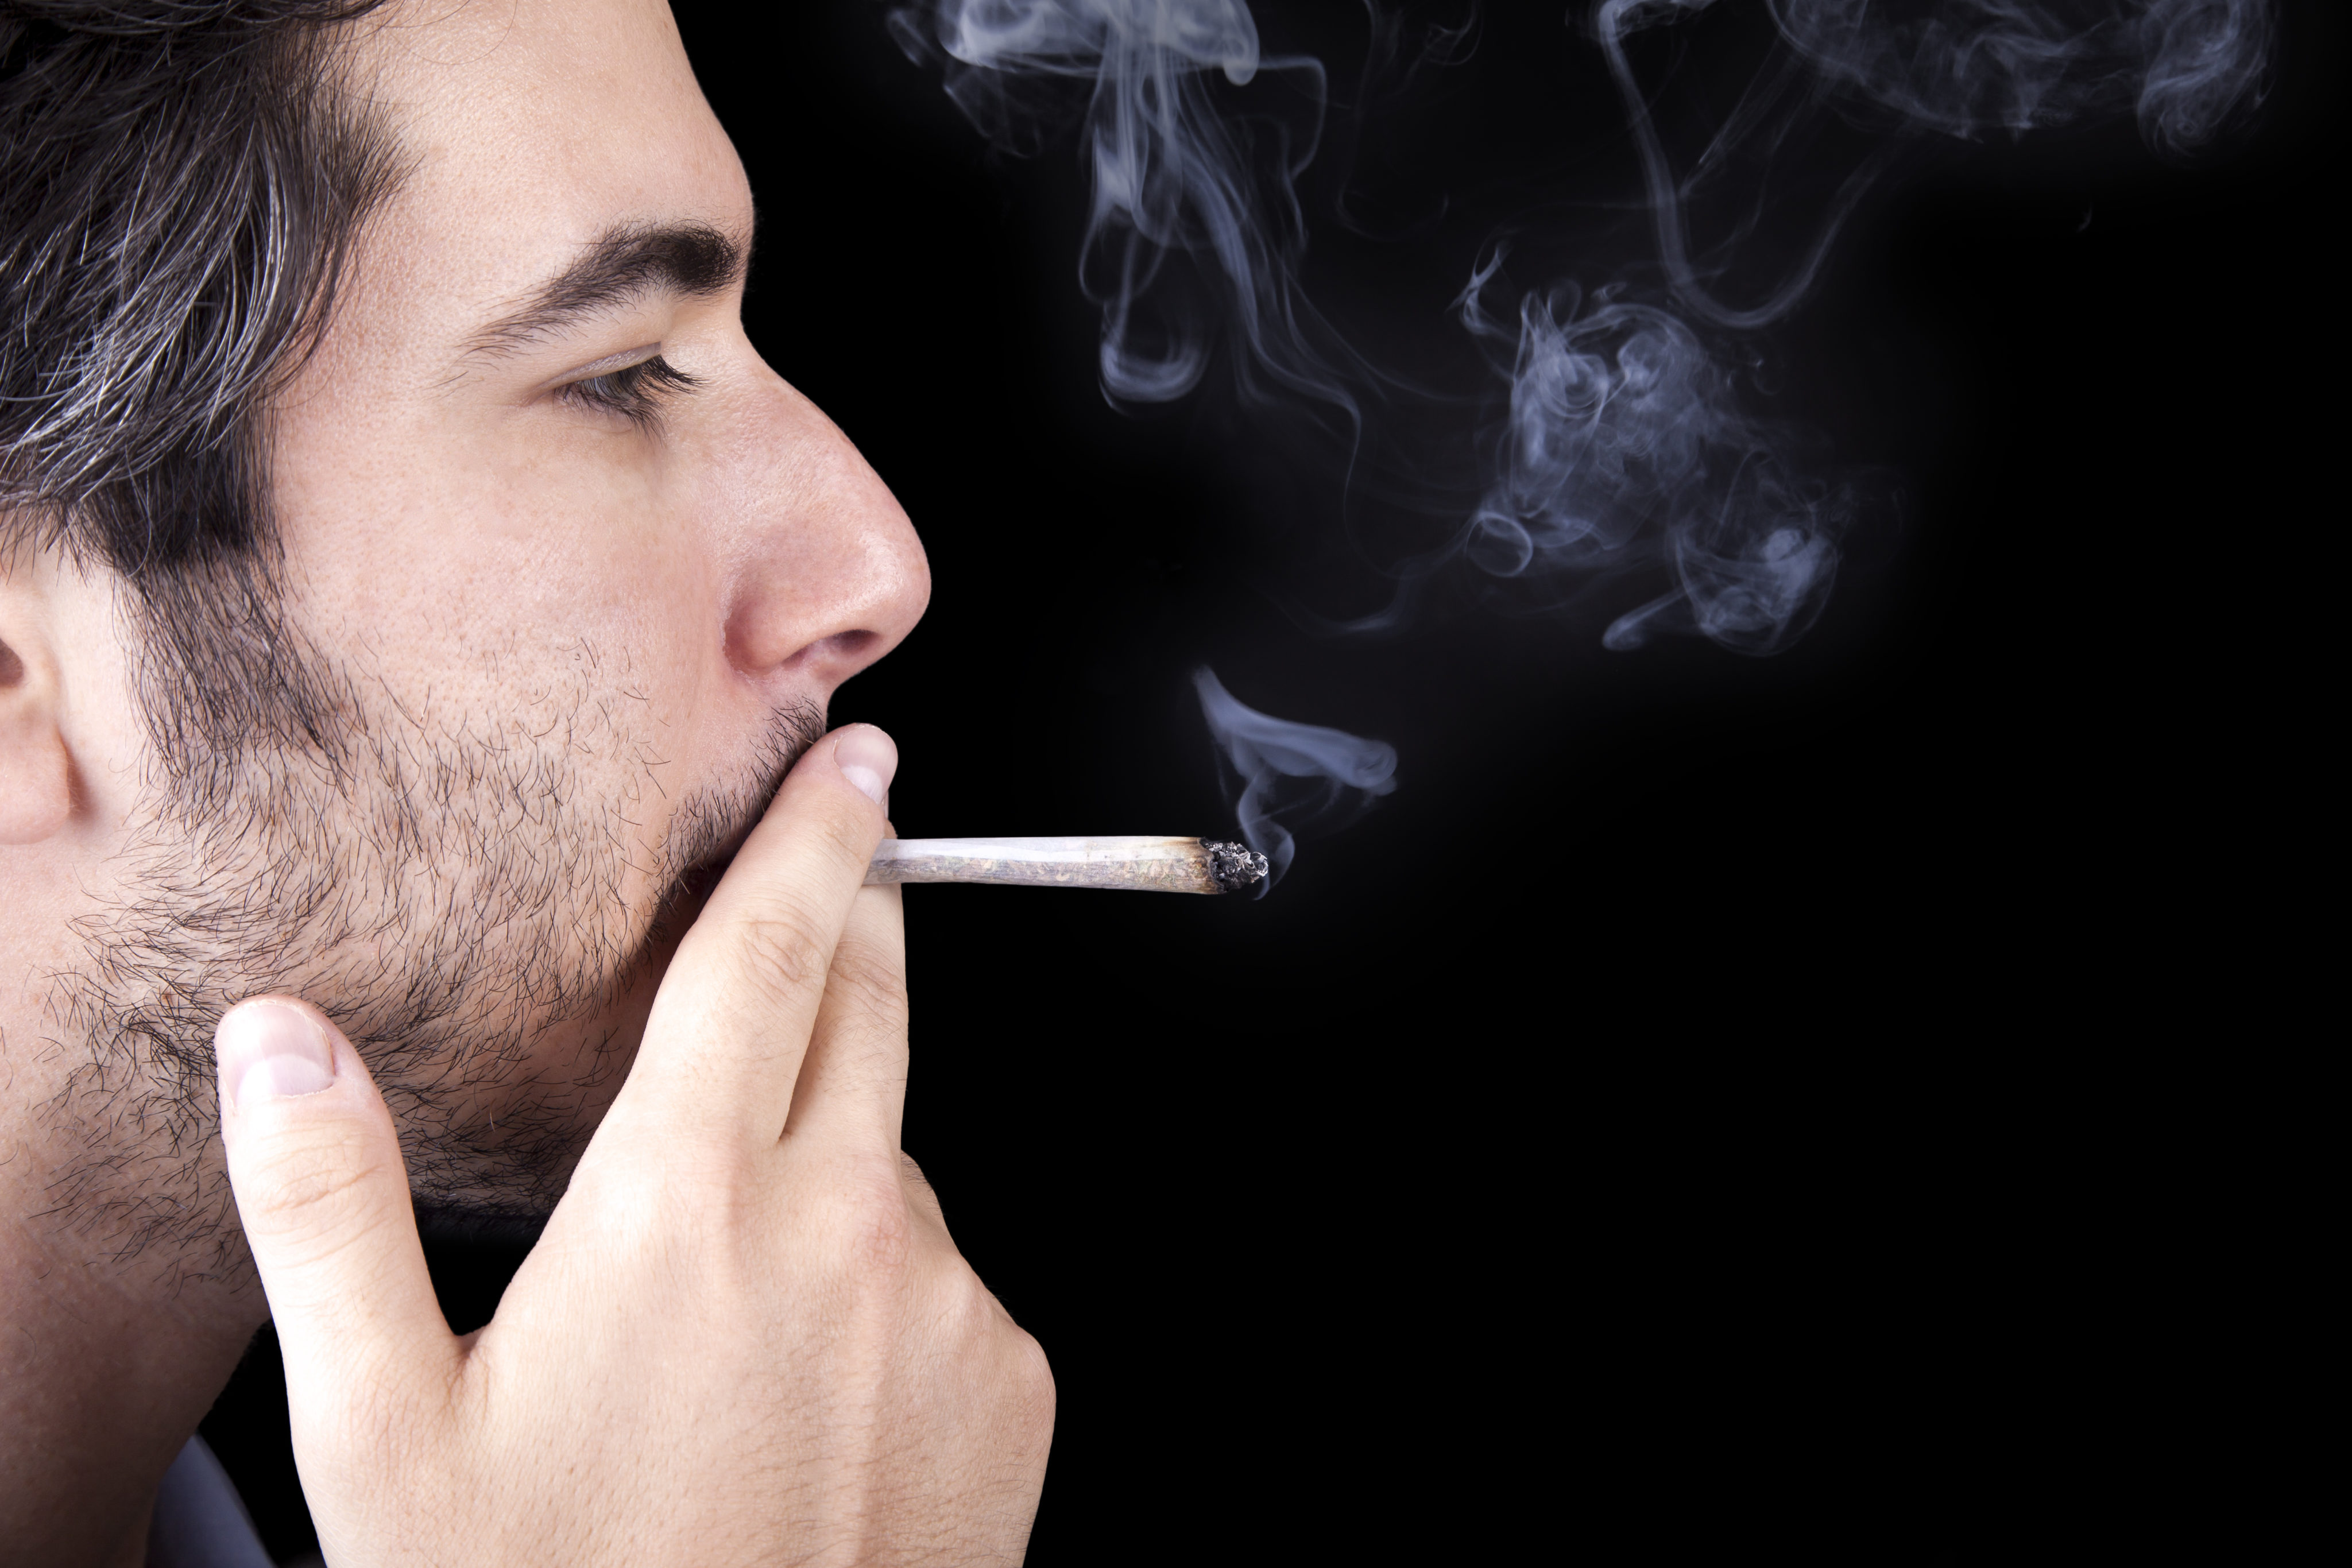 how to get rid of black lips from smoking weed